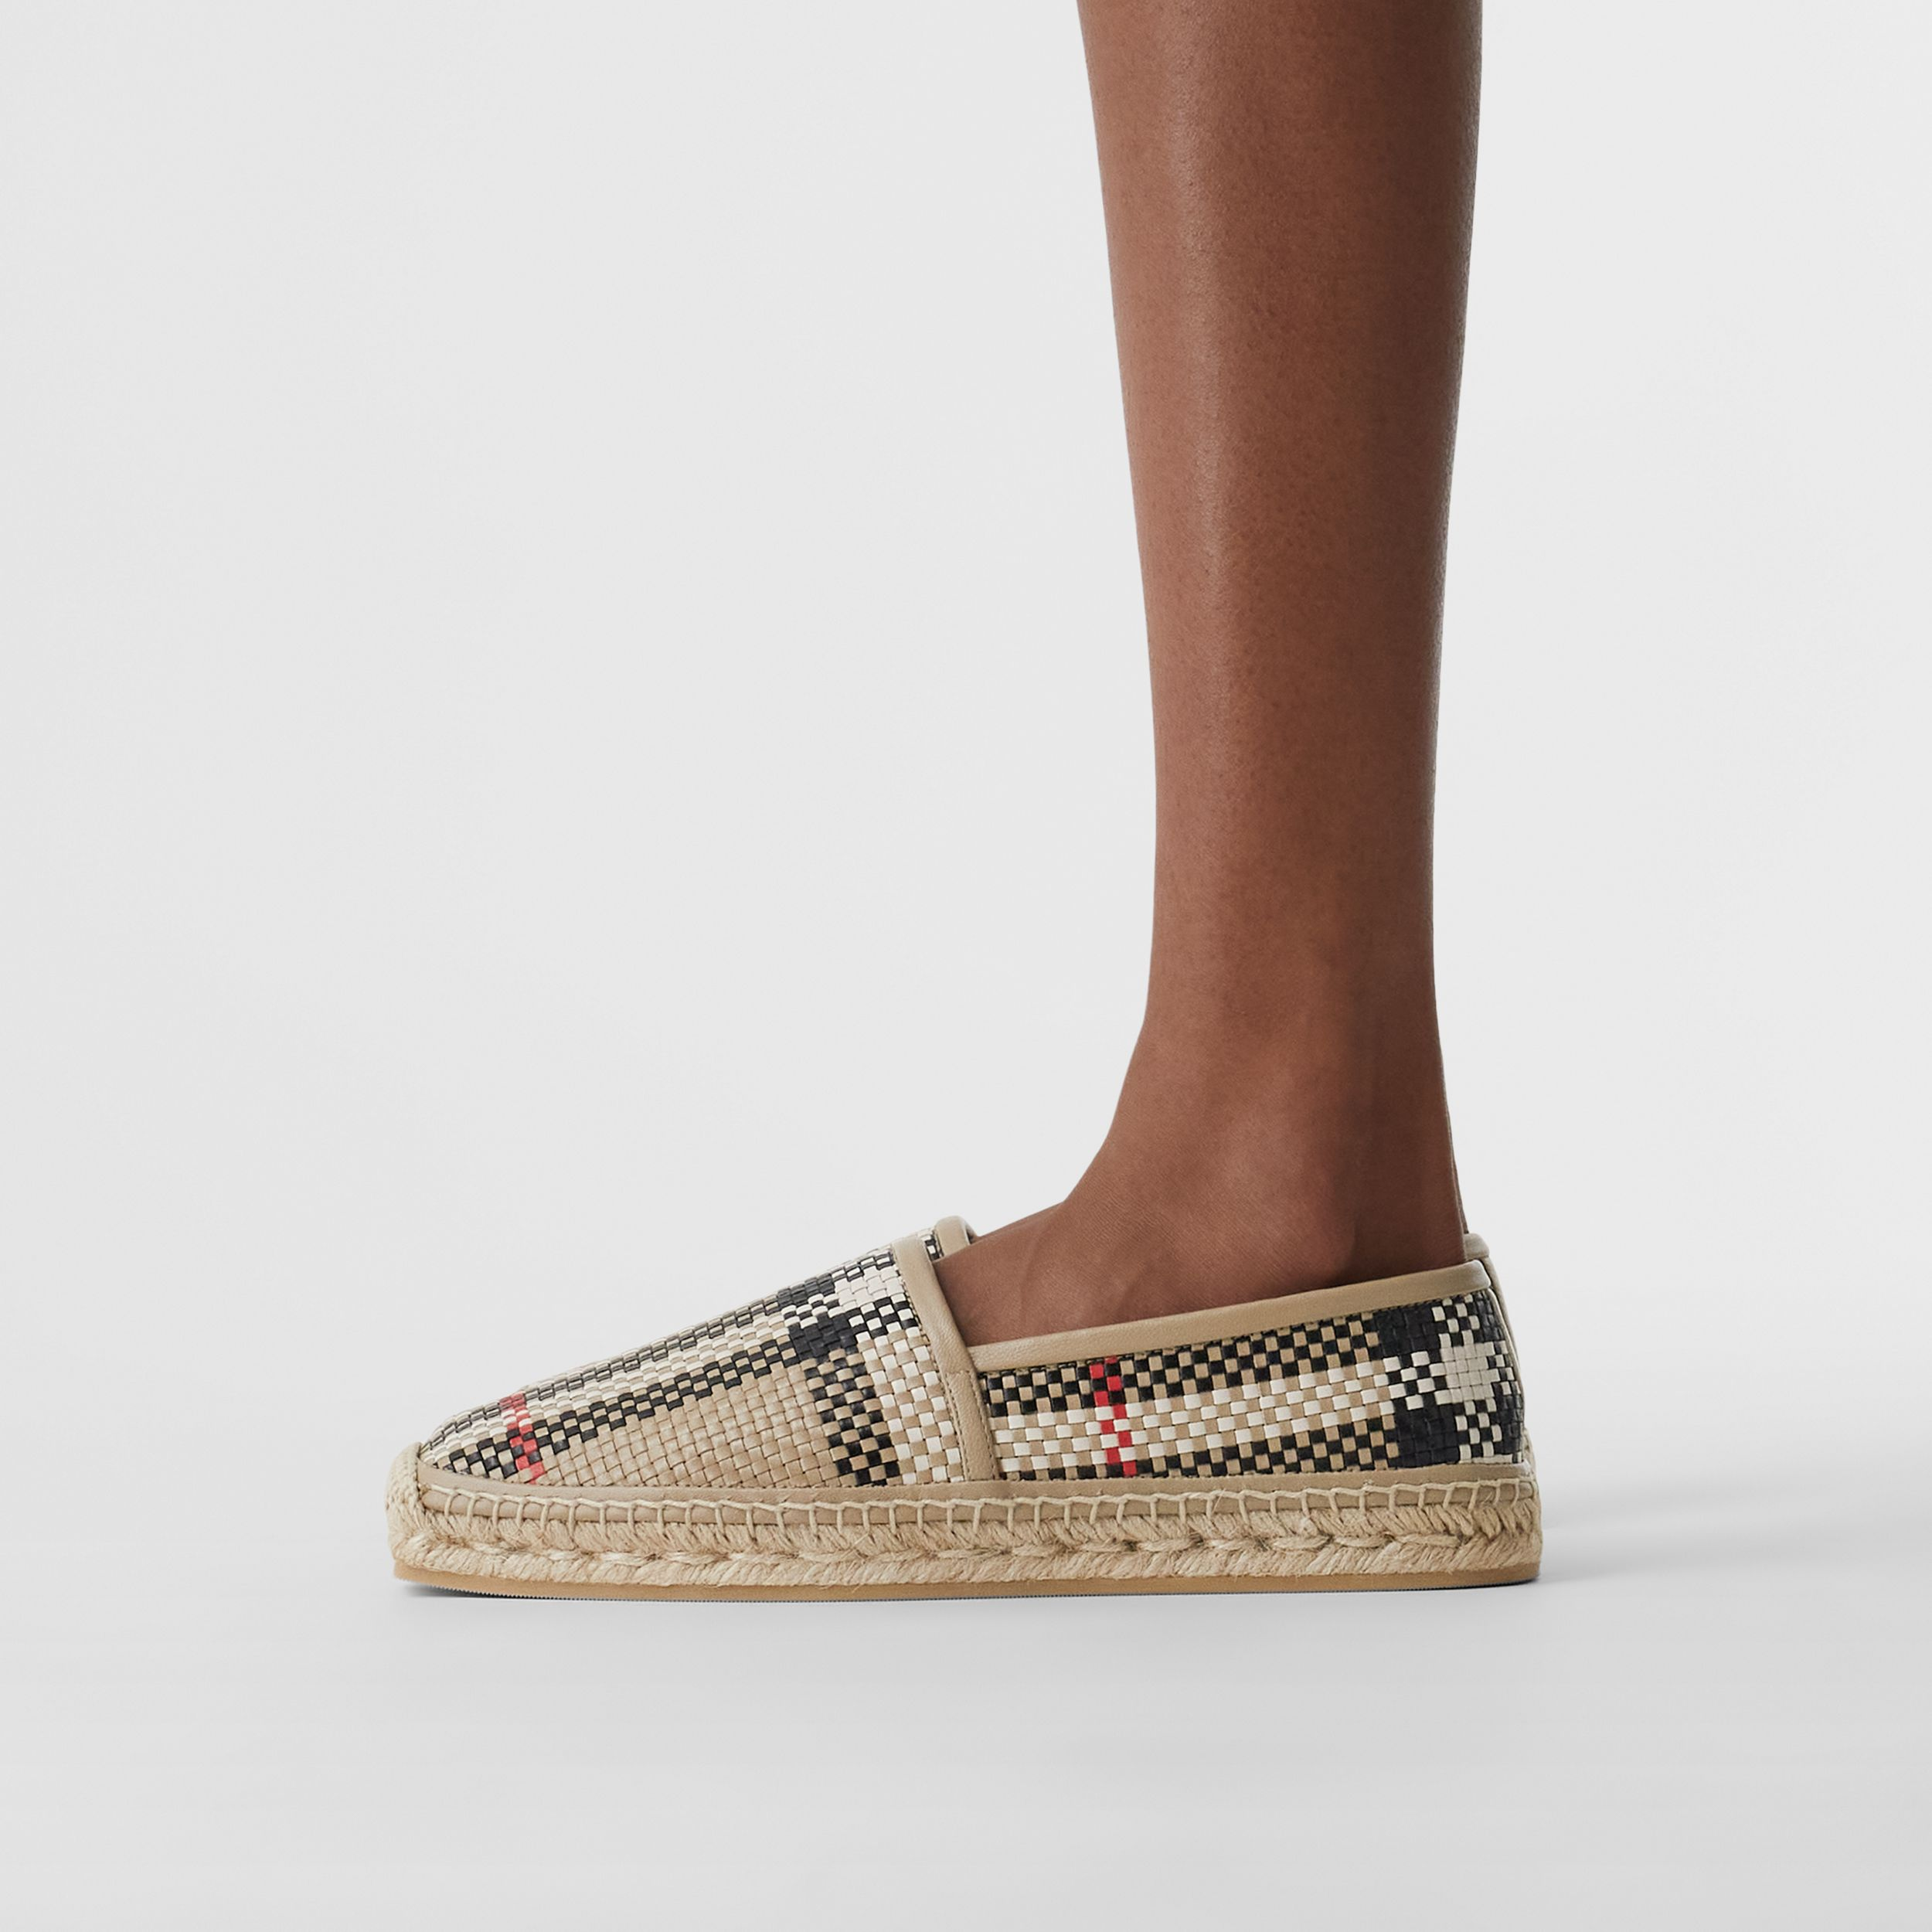 Latticed Leather Espadrilles in Archive Beige - Women | Burberry Hong Kong S.A.R. - 3